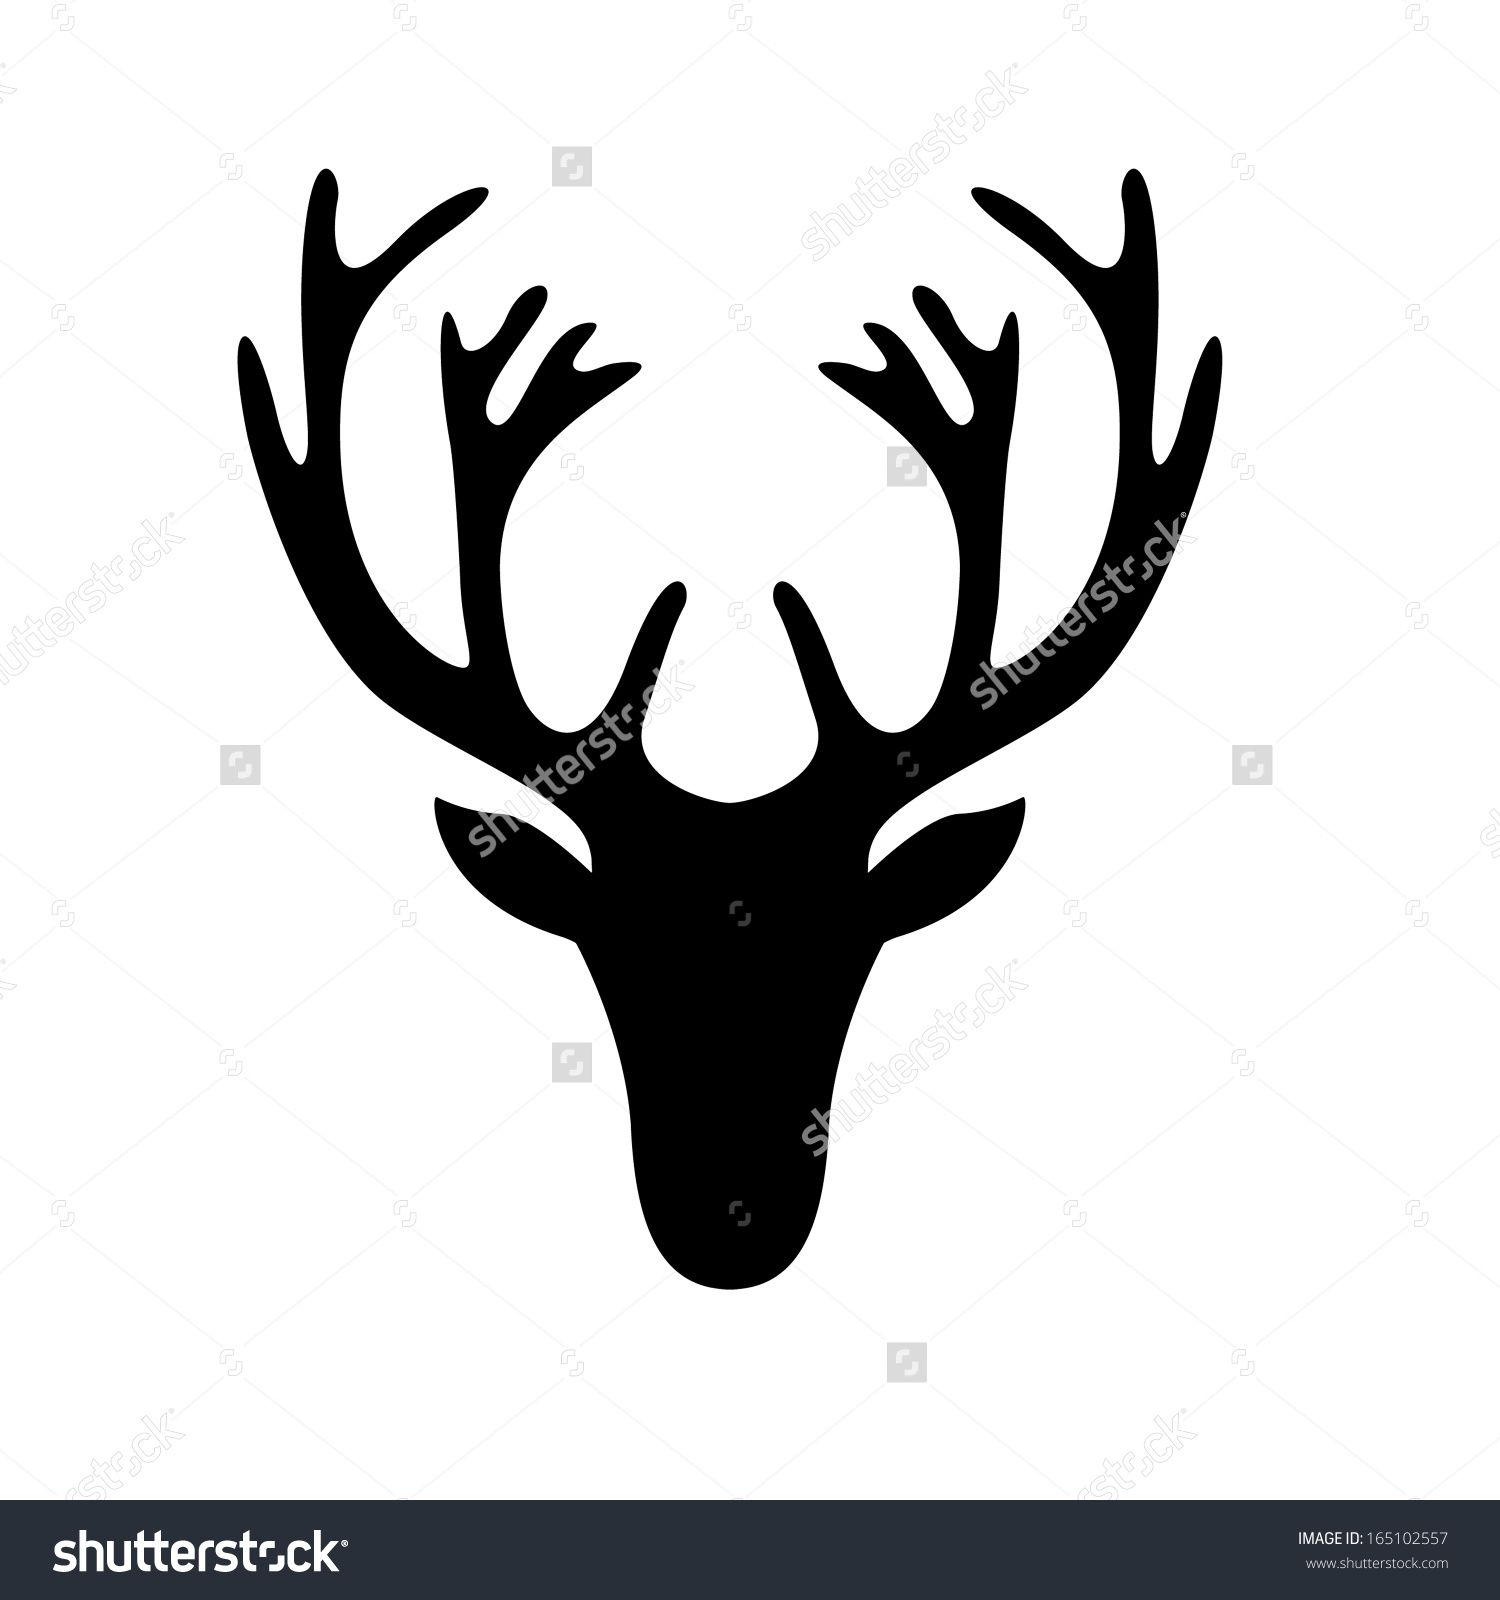 deer head silhouette - Google Search | Sgrafitto ...